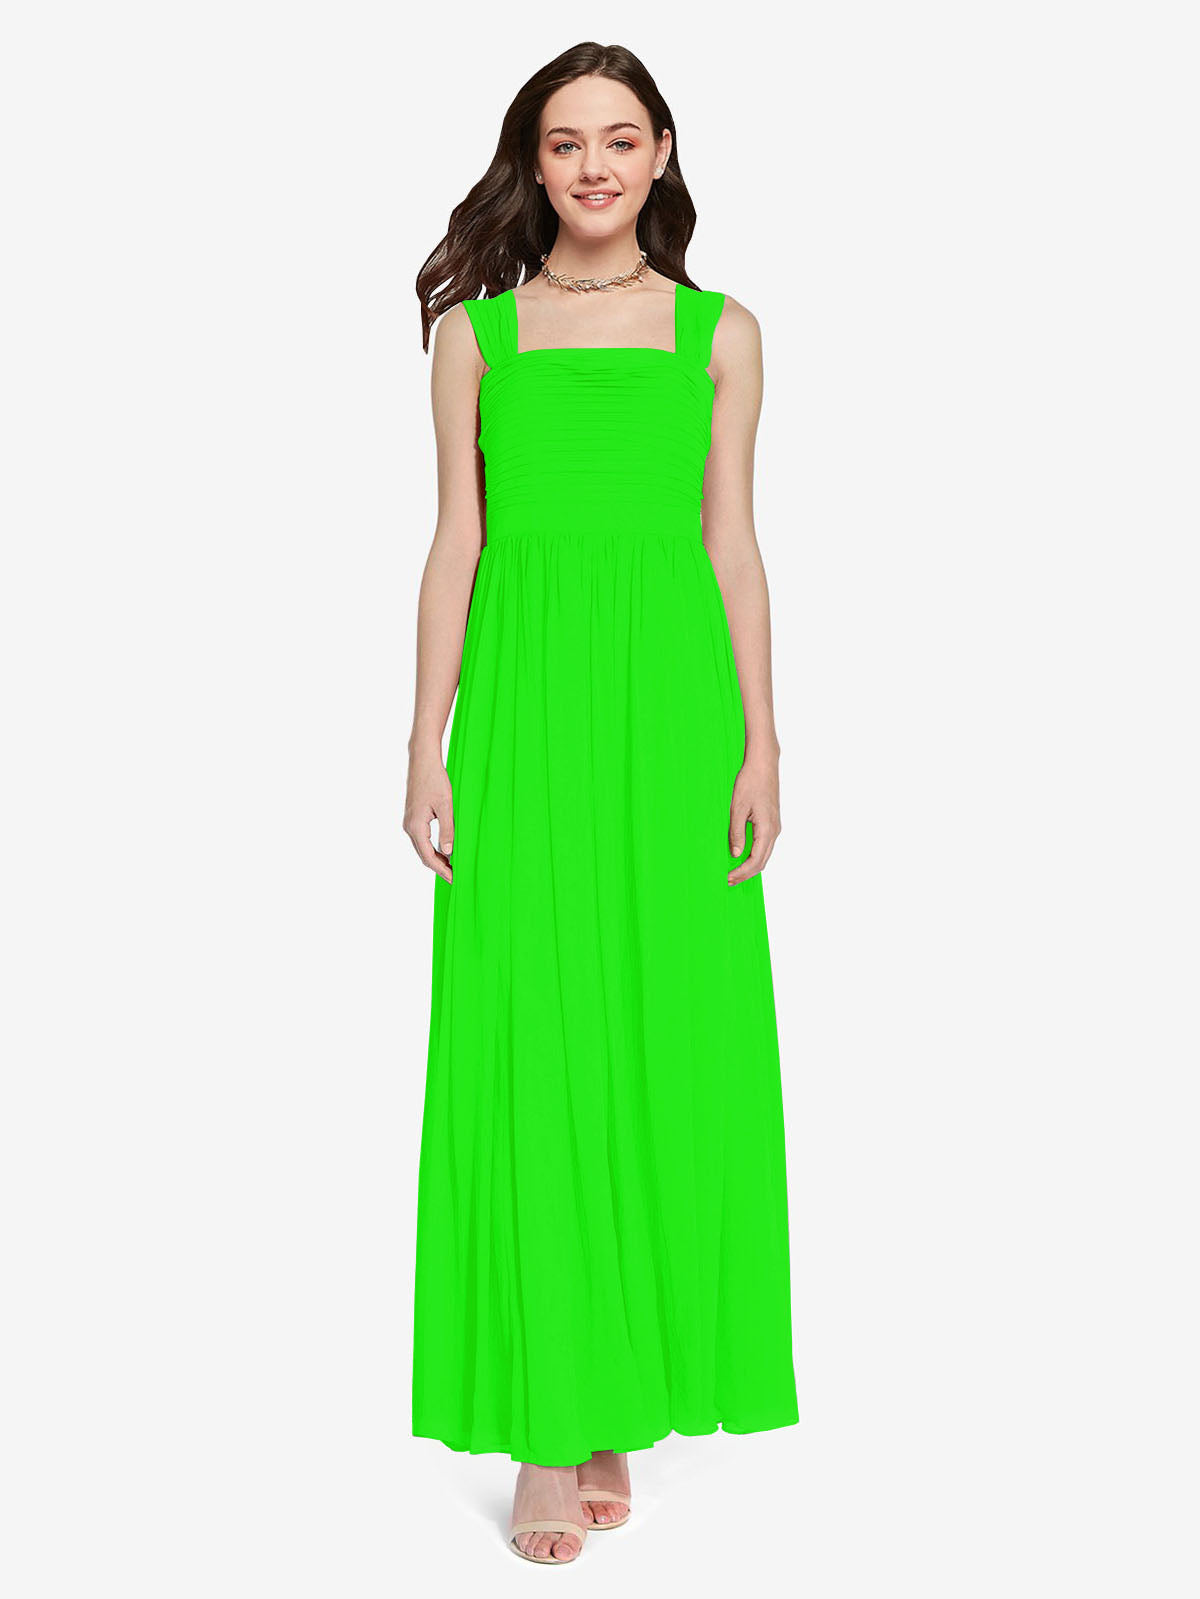 Long A-Line Square Sleeveless Lime Green Chiffon Bridesmaid Dress Aldridge